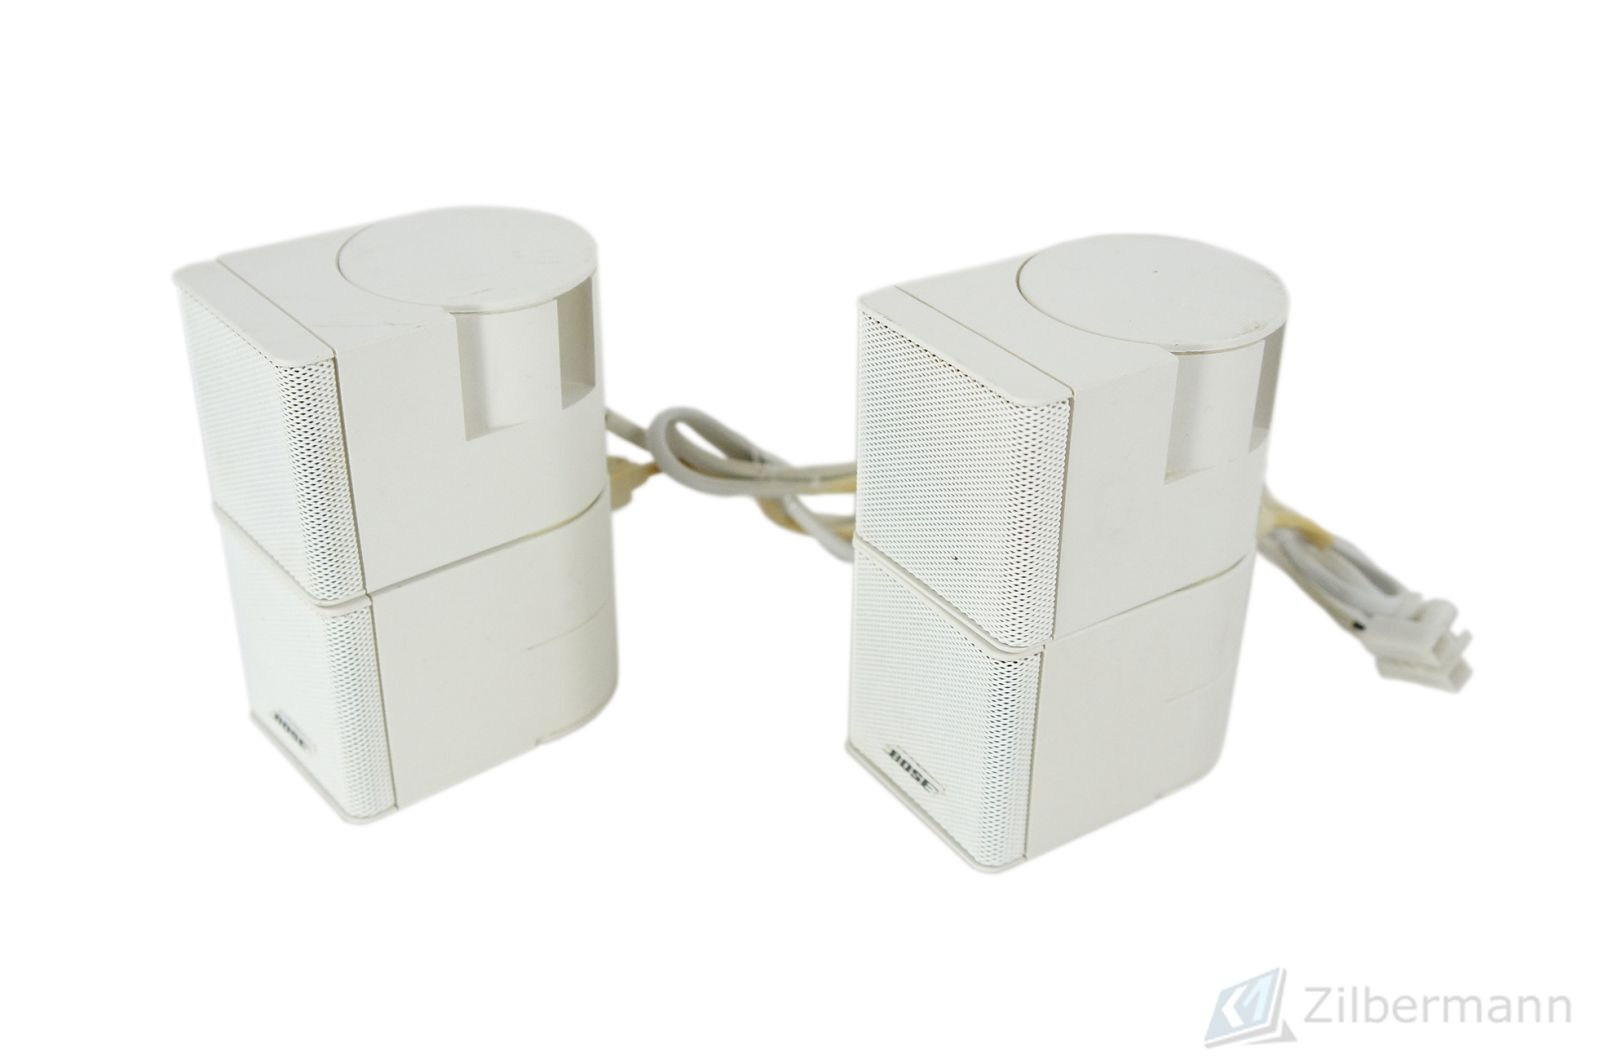 2x_Bose_Jewel_Cubes_Boxen_Satelliten_mit_Adapter_Weiss_07